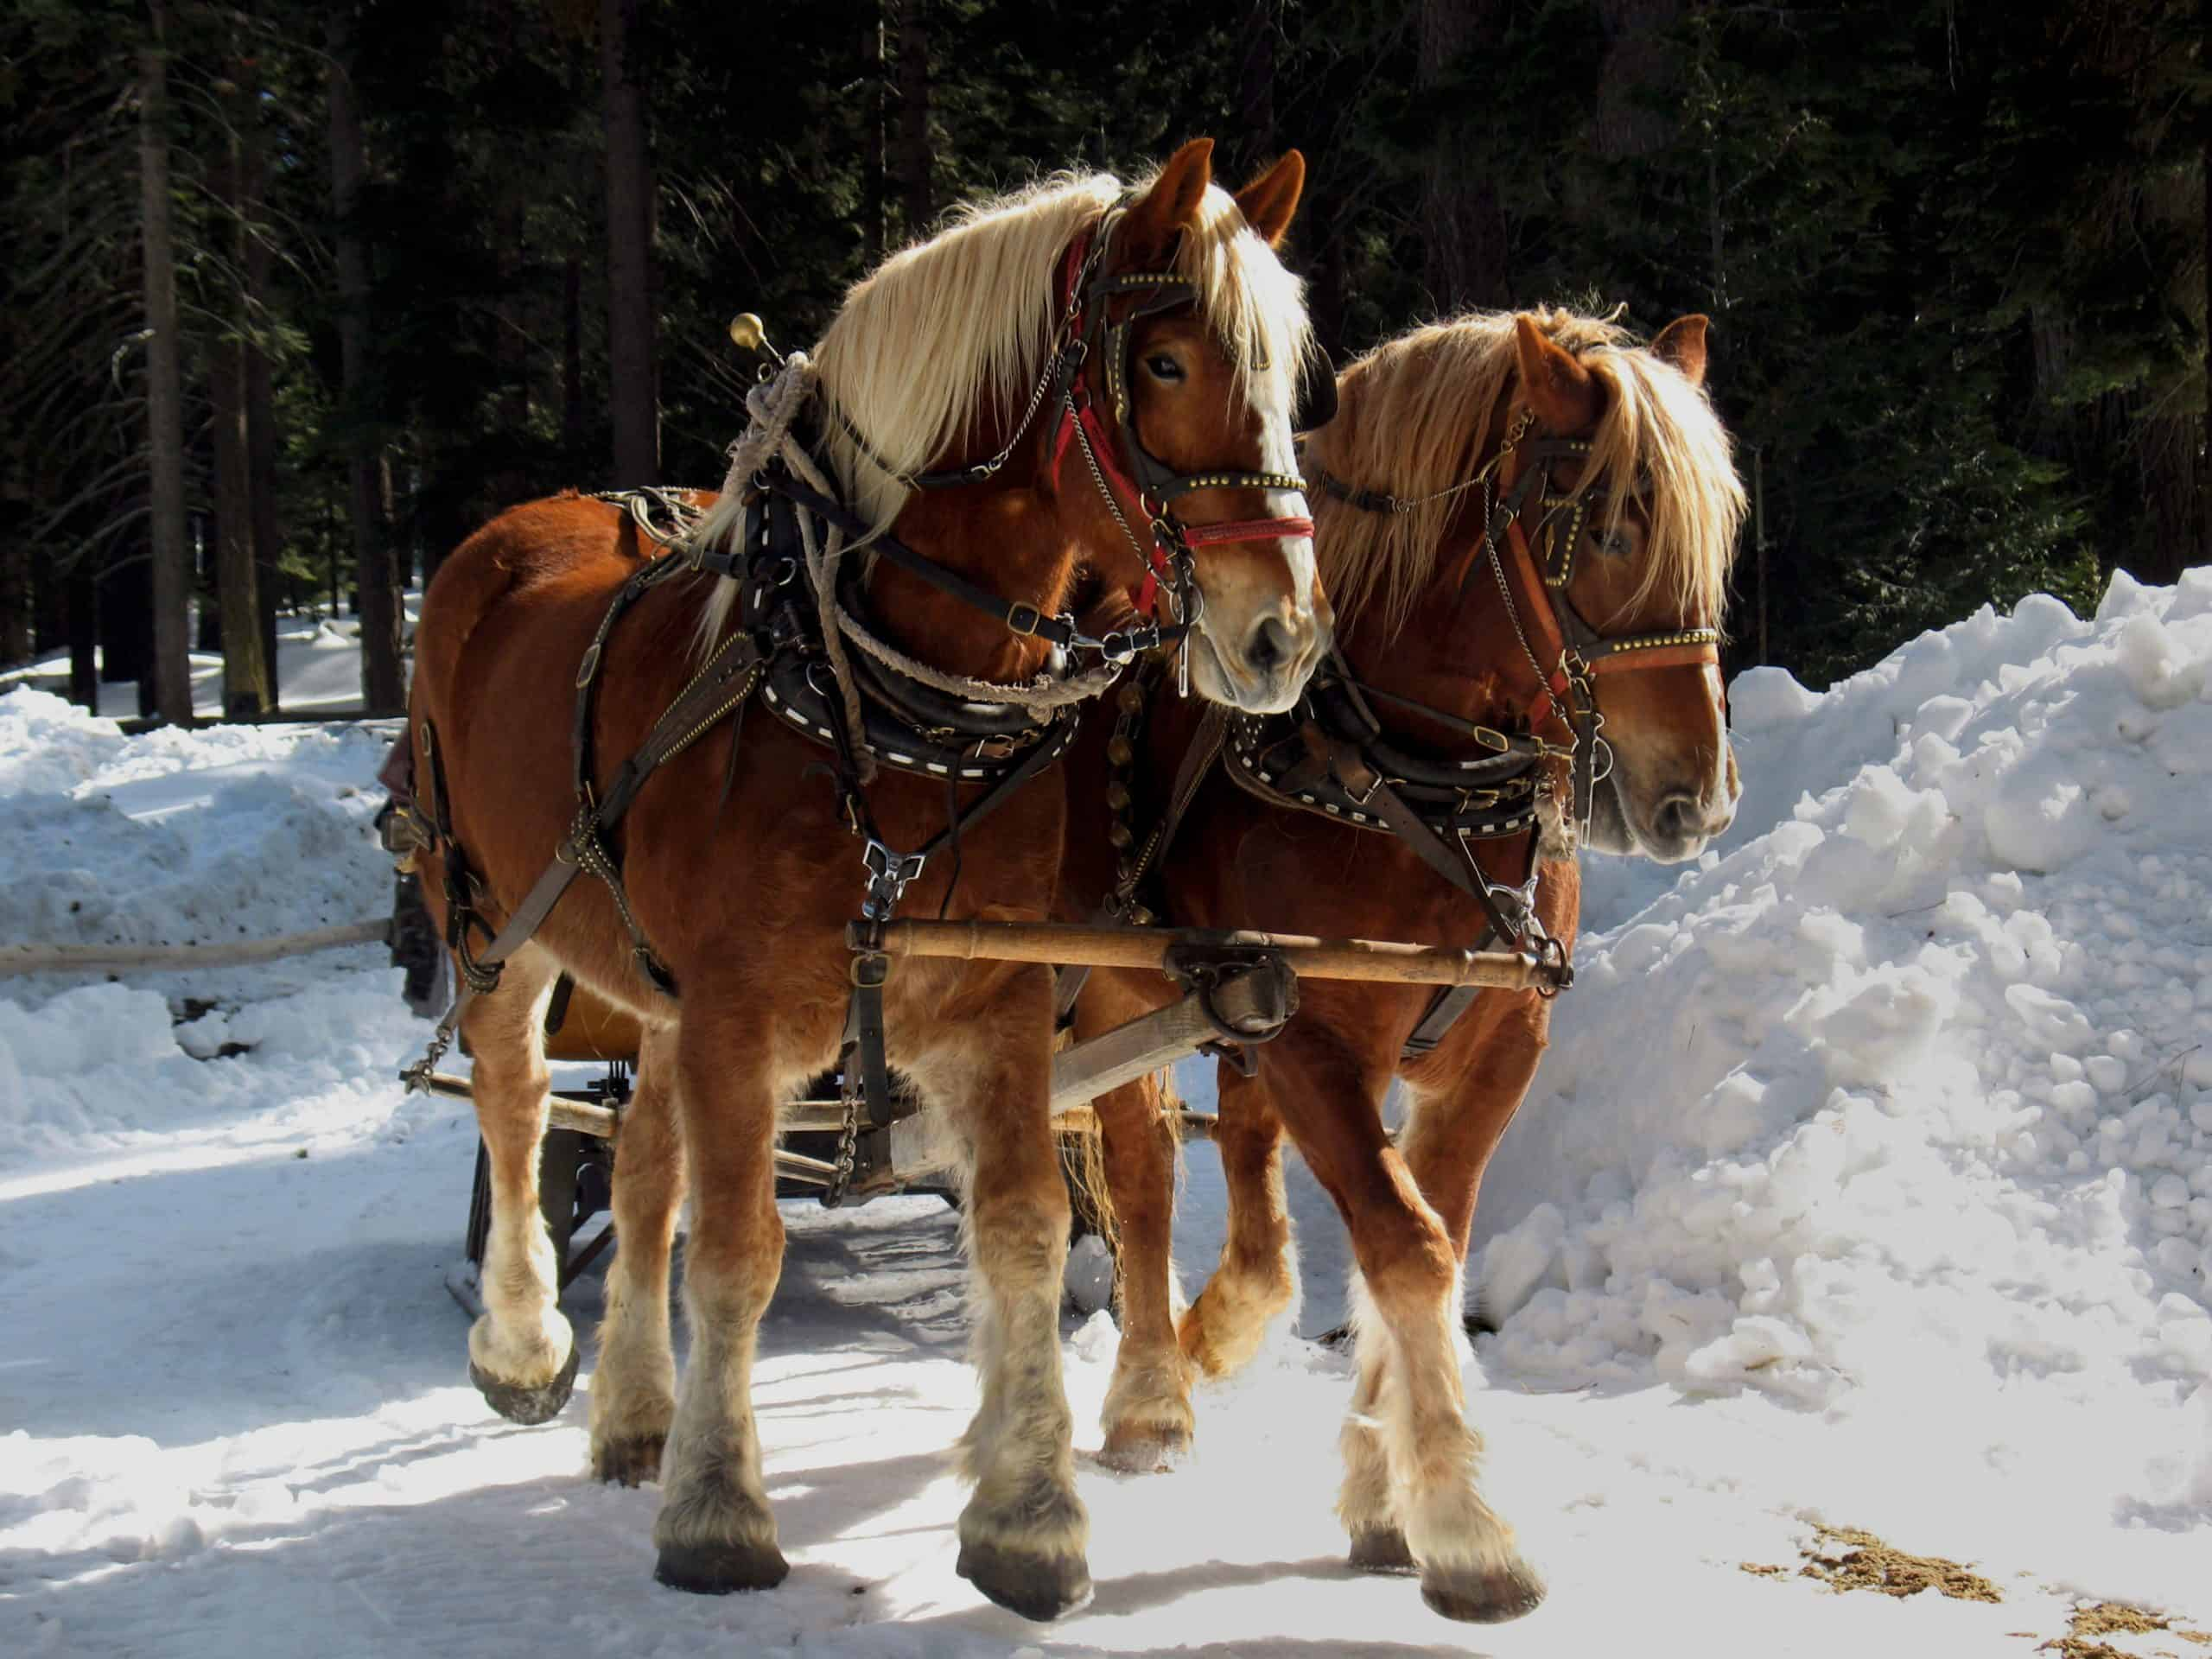 Two Belgian Draft Horses pulling a sleigh in the snow.